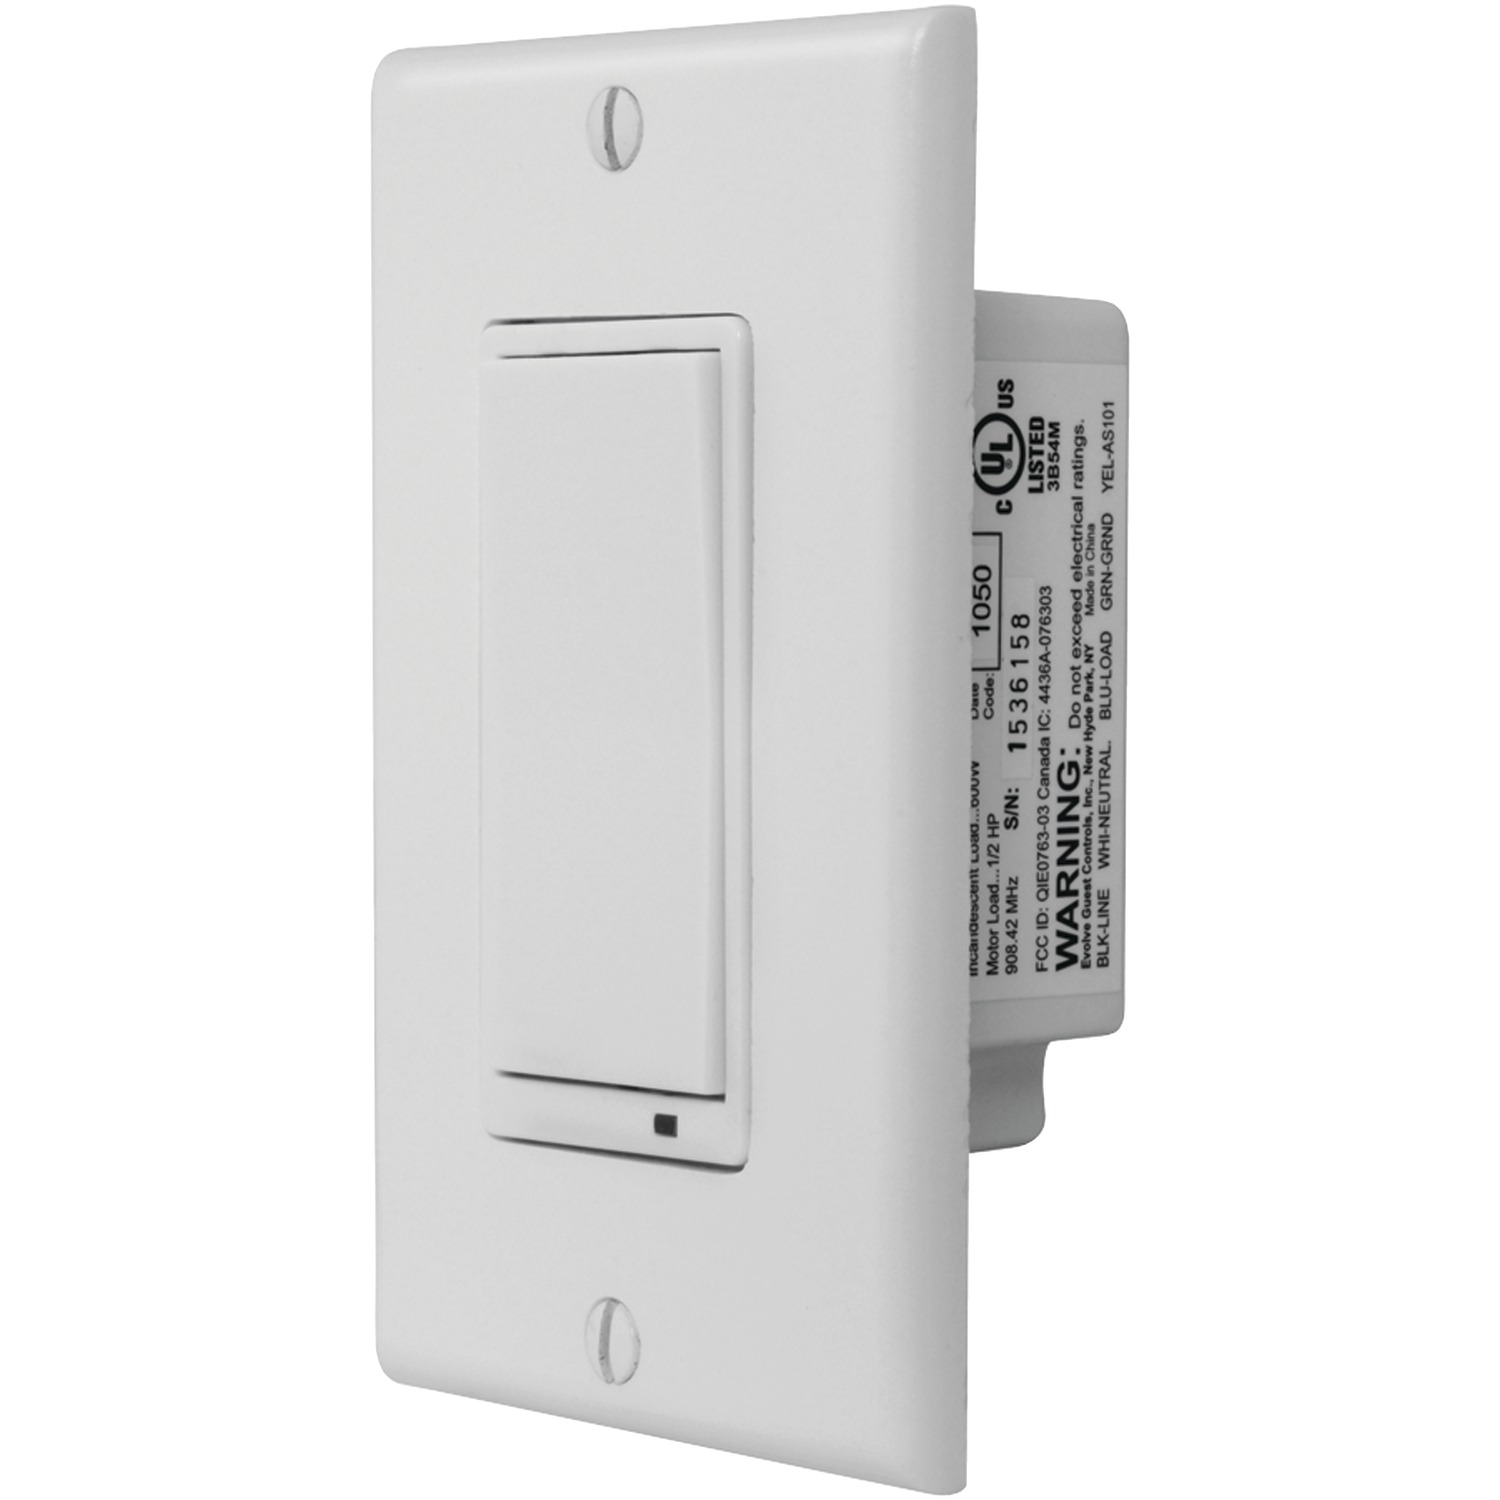 Gocontrol Wt00z5 1 Z Waver Smart 3 Way Switch Dimmer To